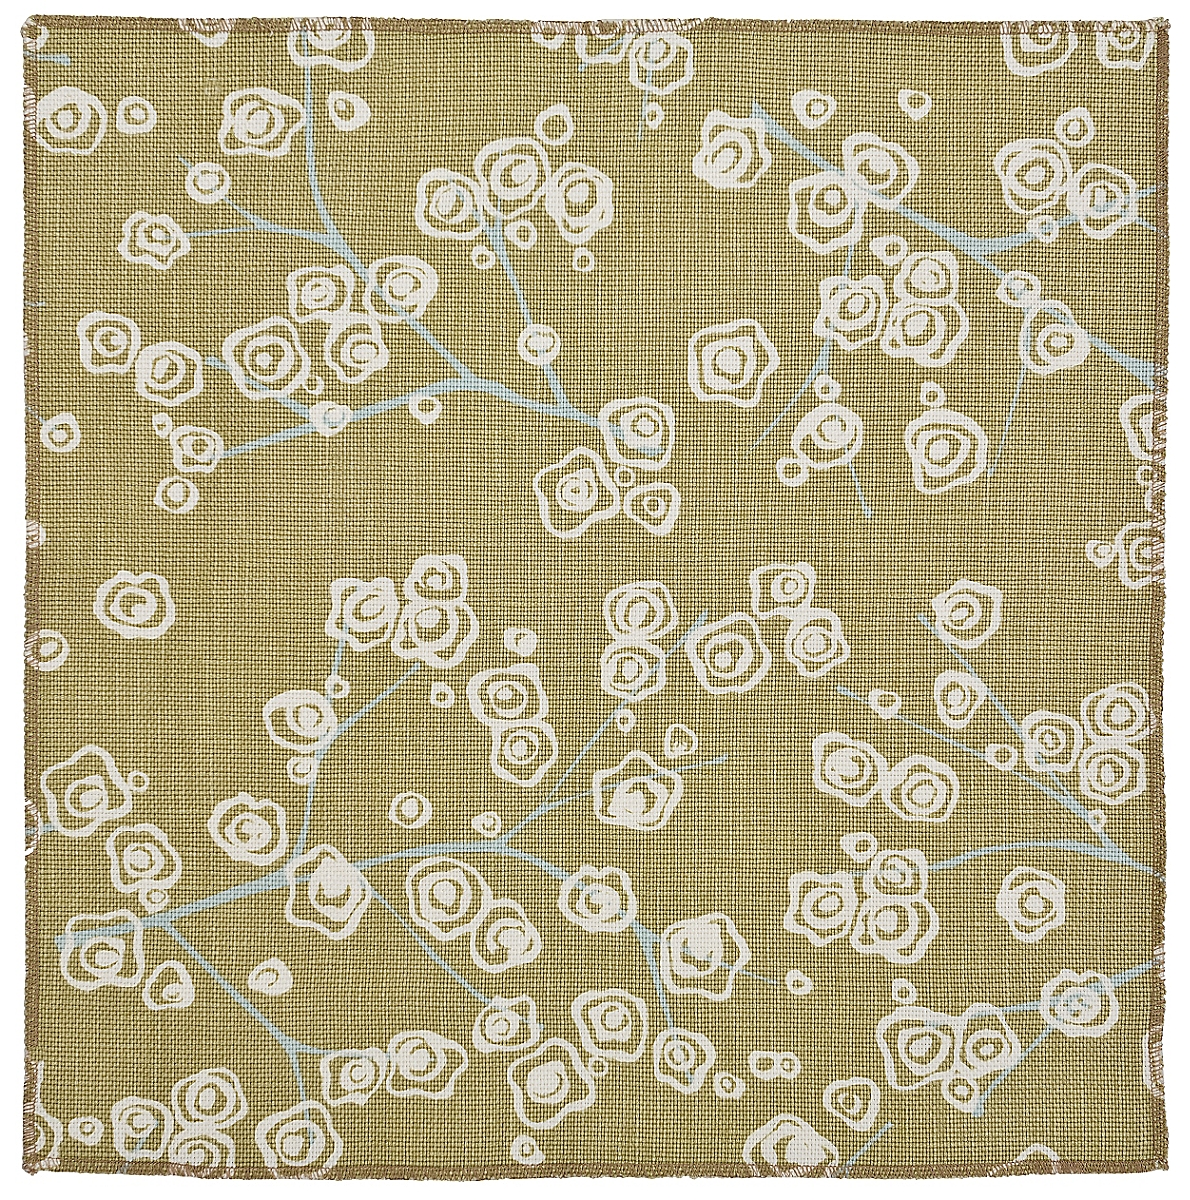 Branchberry: Pickle (fabric yardage)